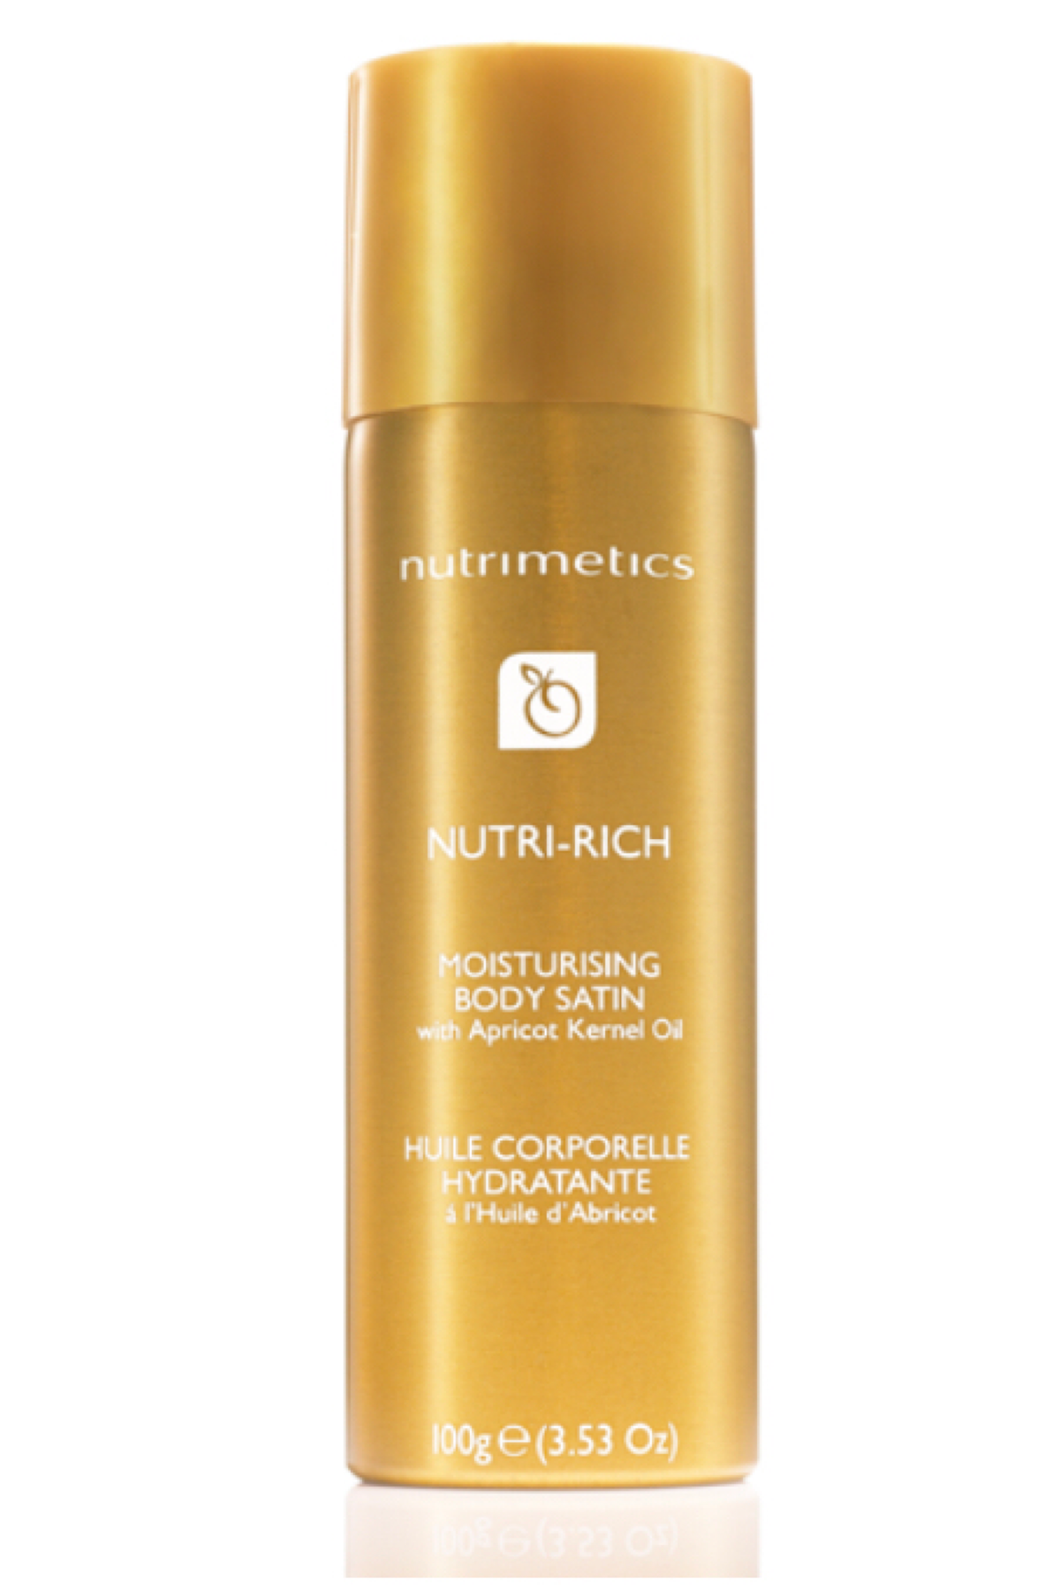 Nutri-Rich Moisturising Body Satin 100g